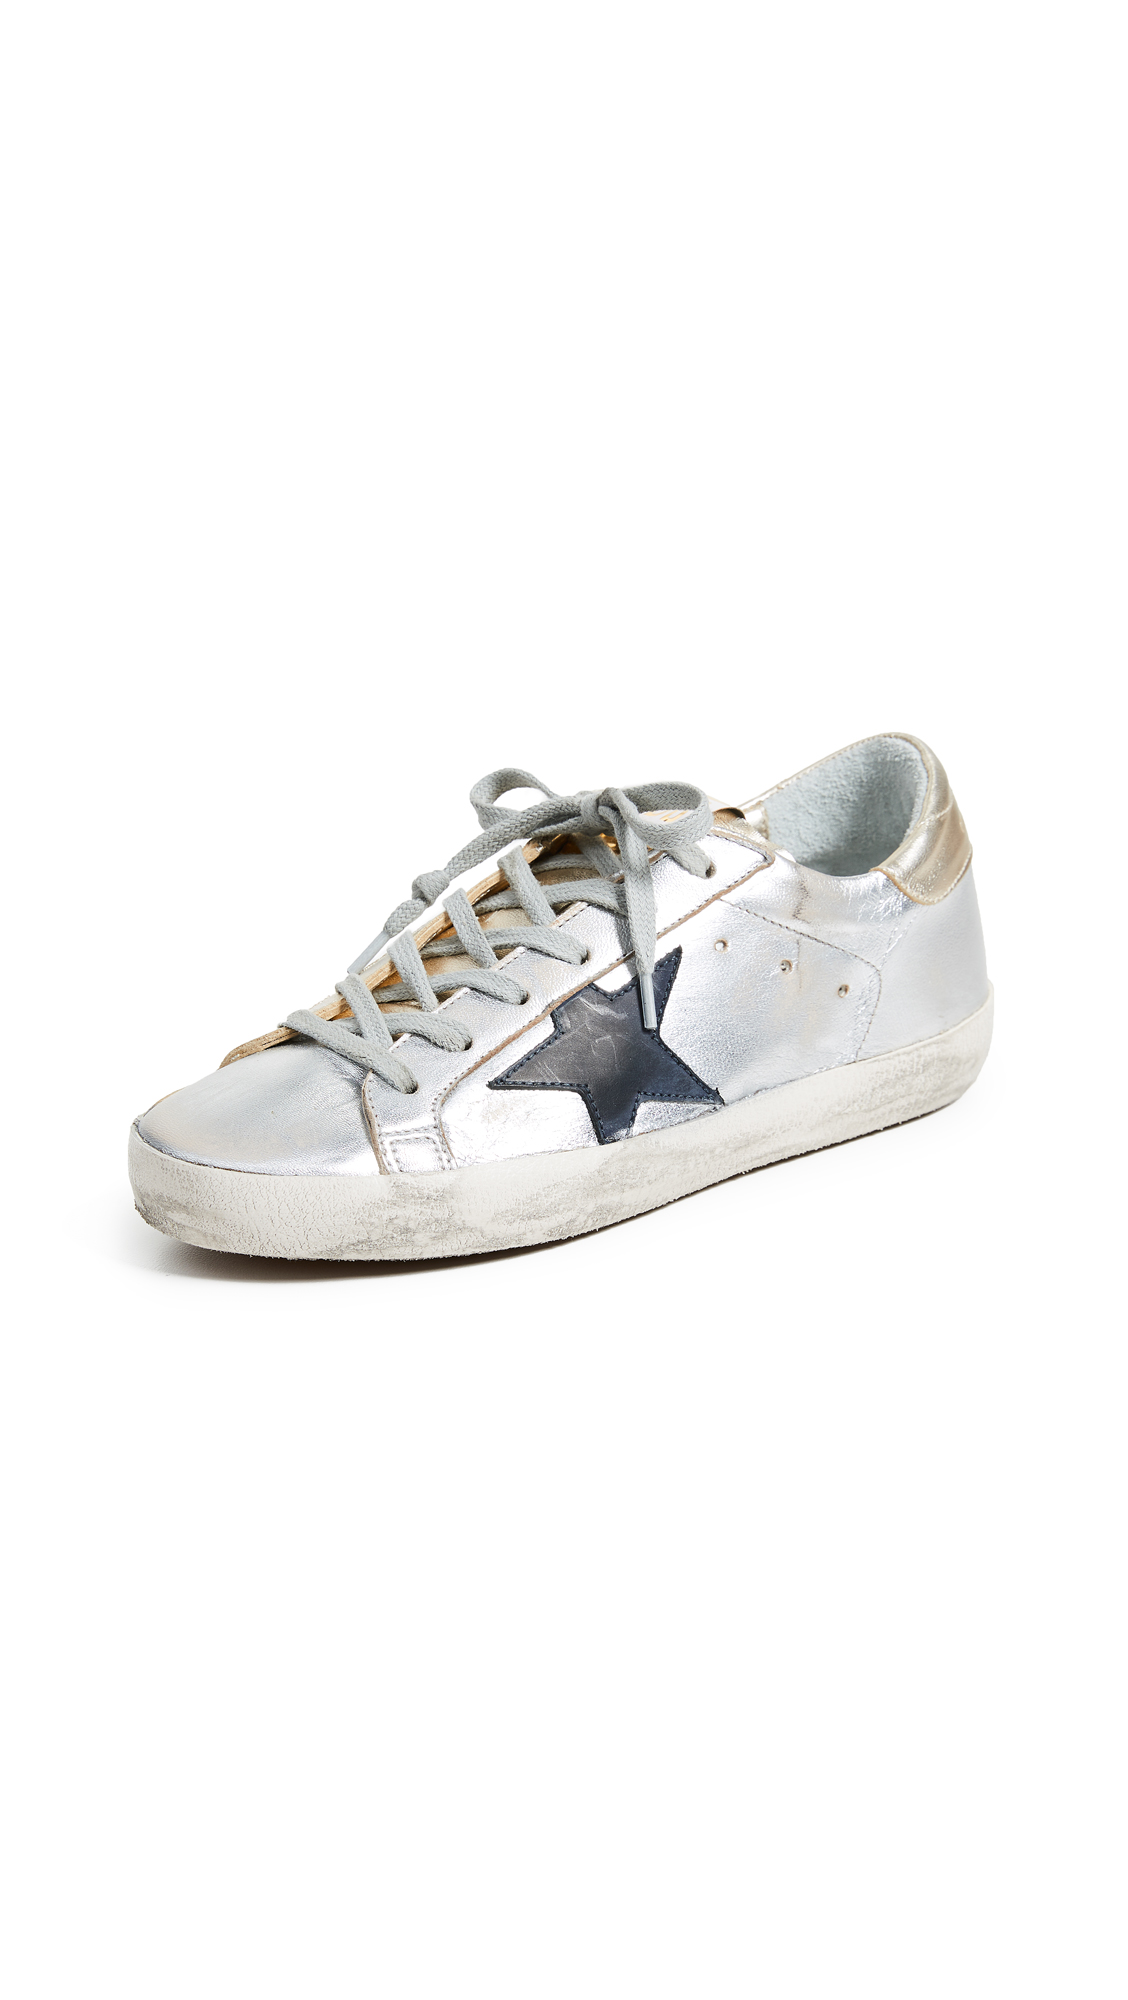 Golden Goose Superstar Sneakers - Gold/Silver